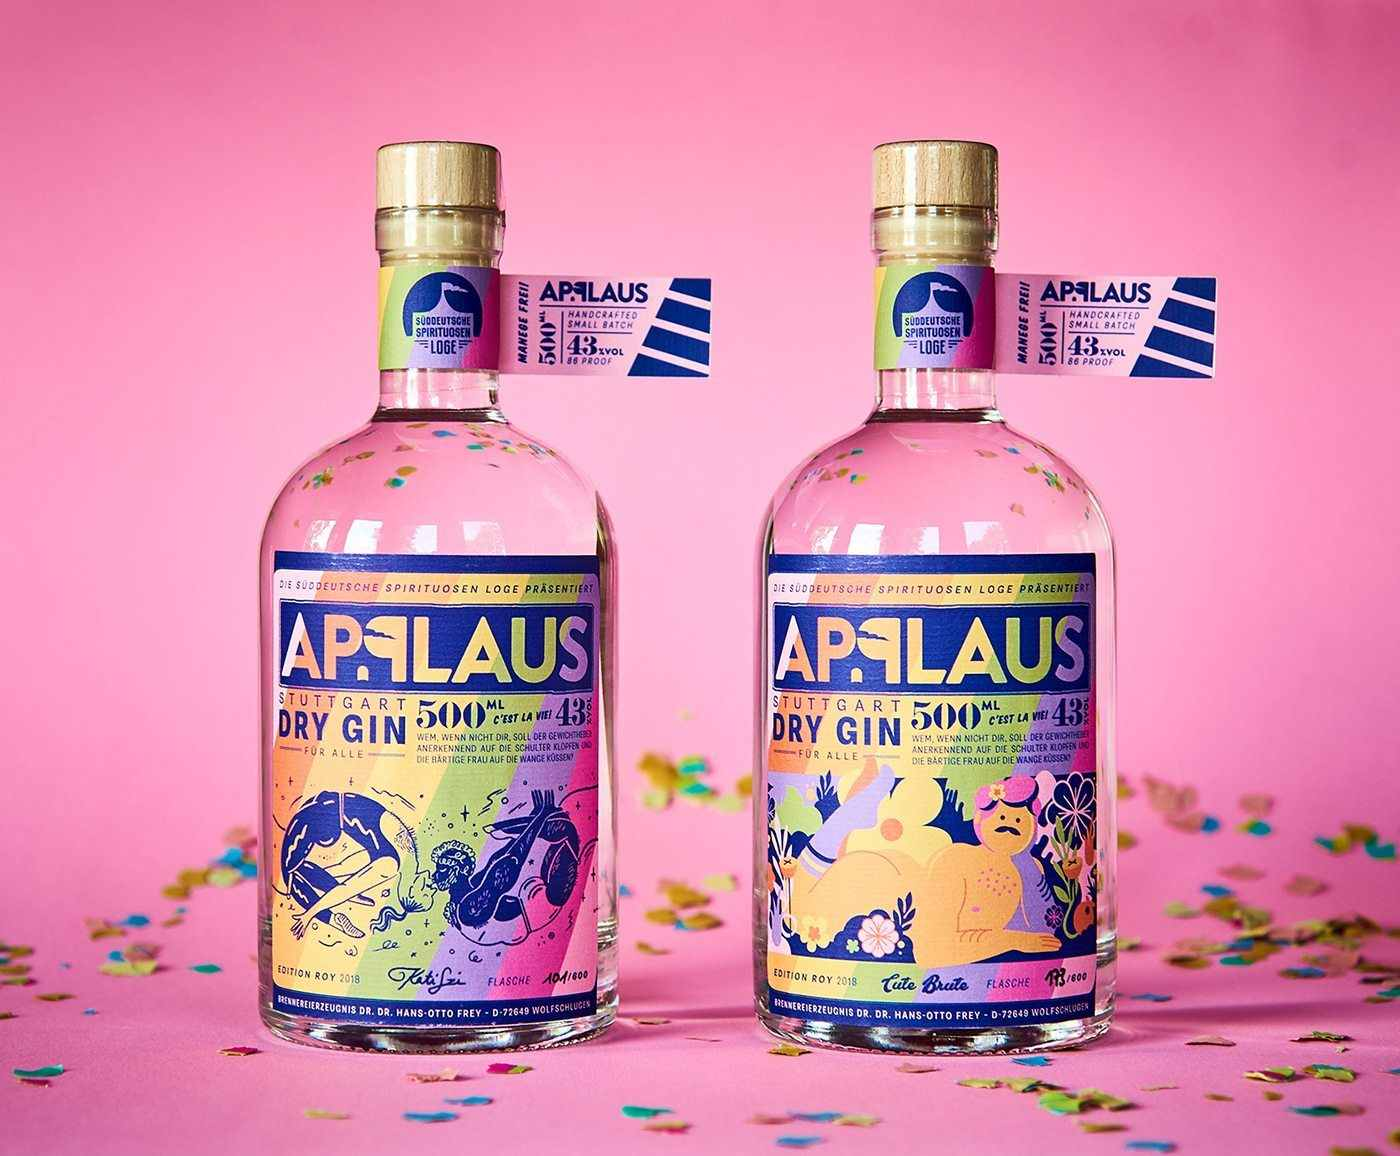 [Applaus Dry Gin]